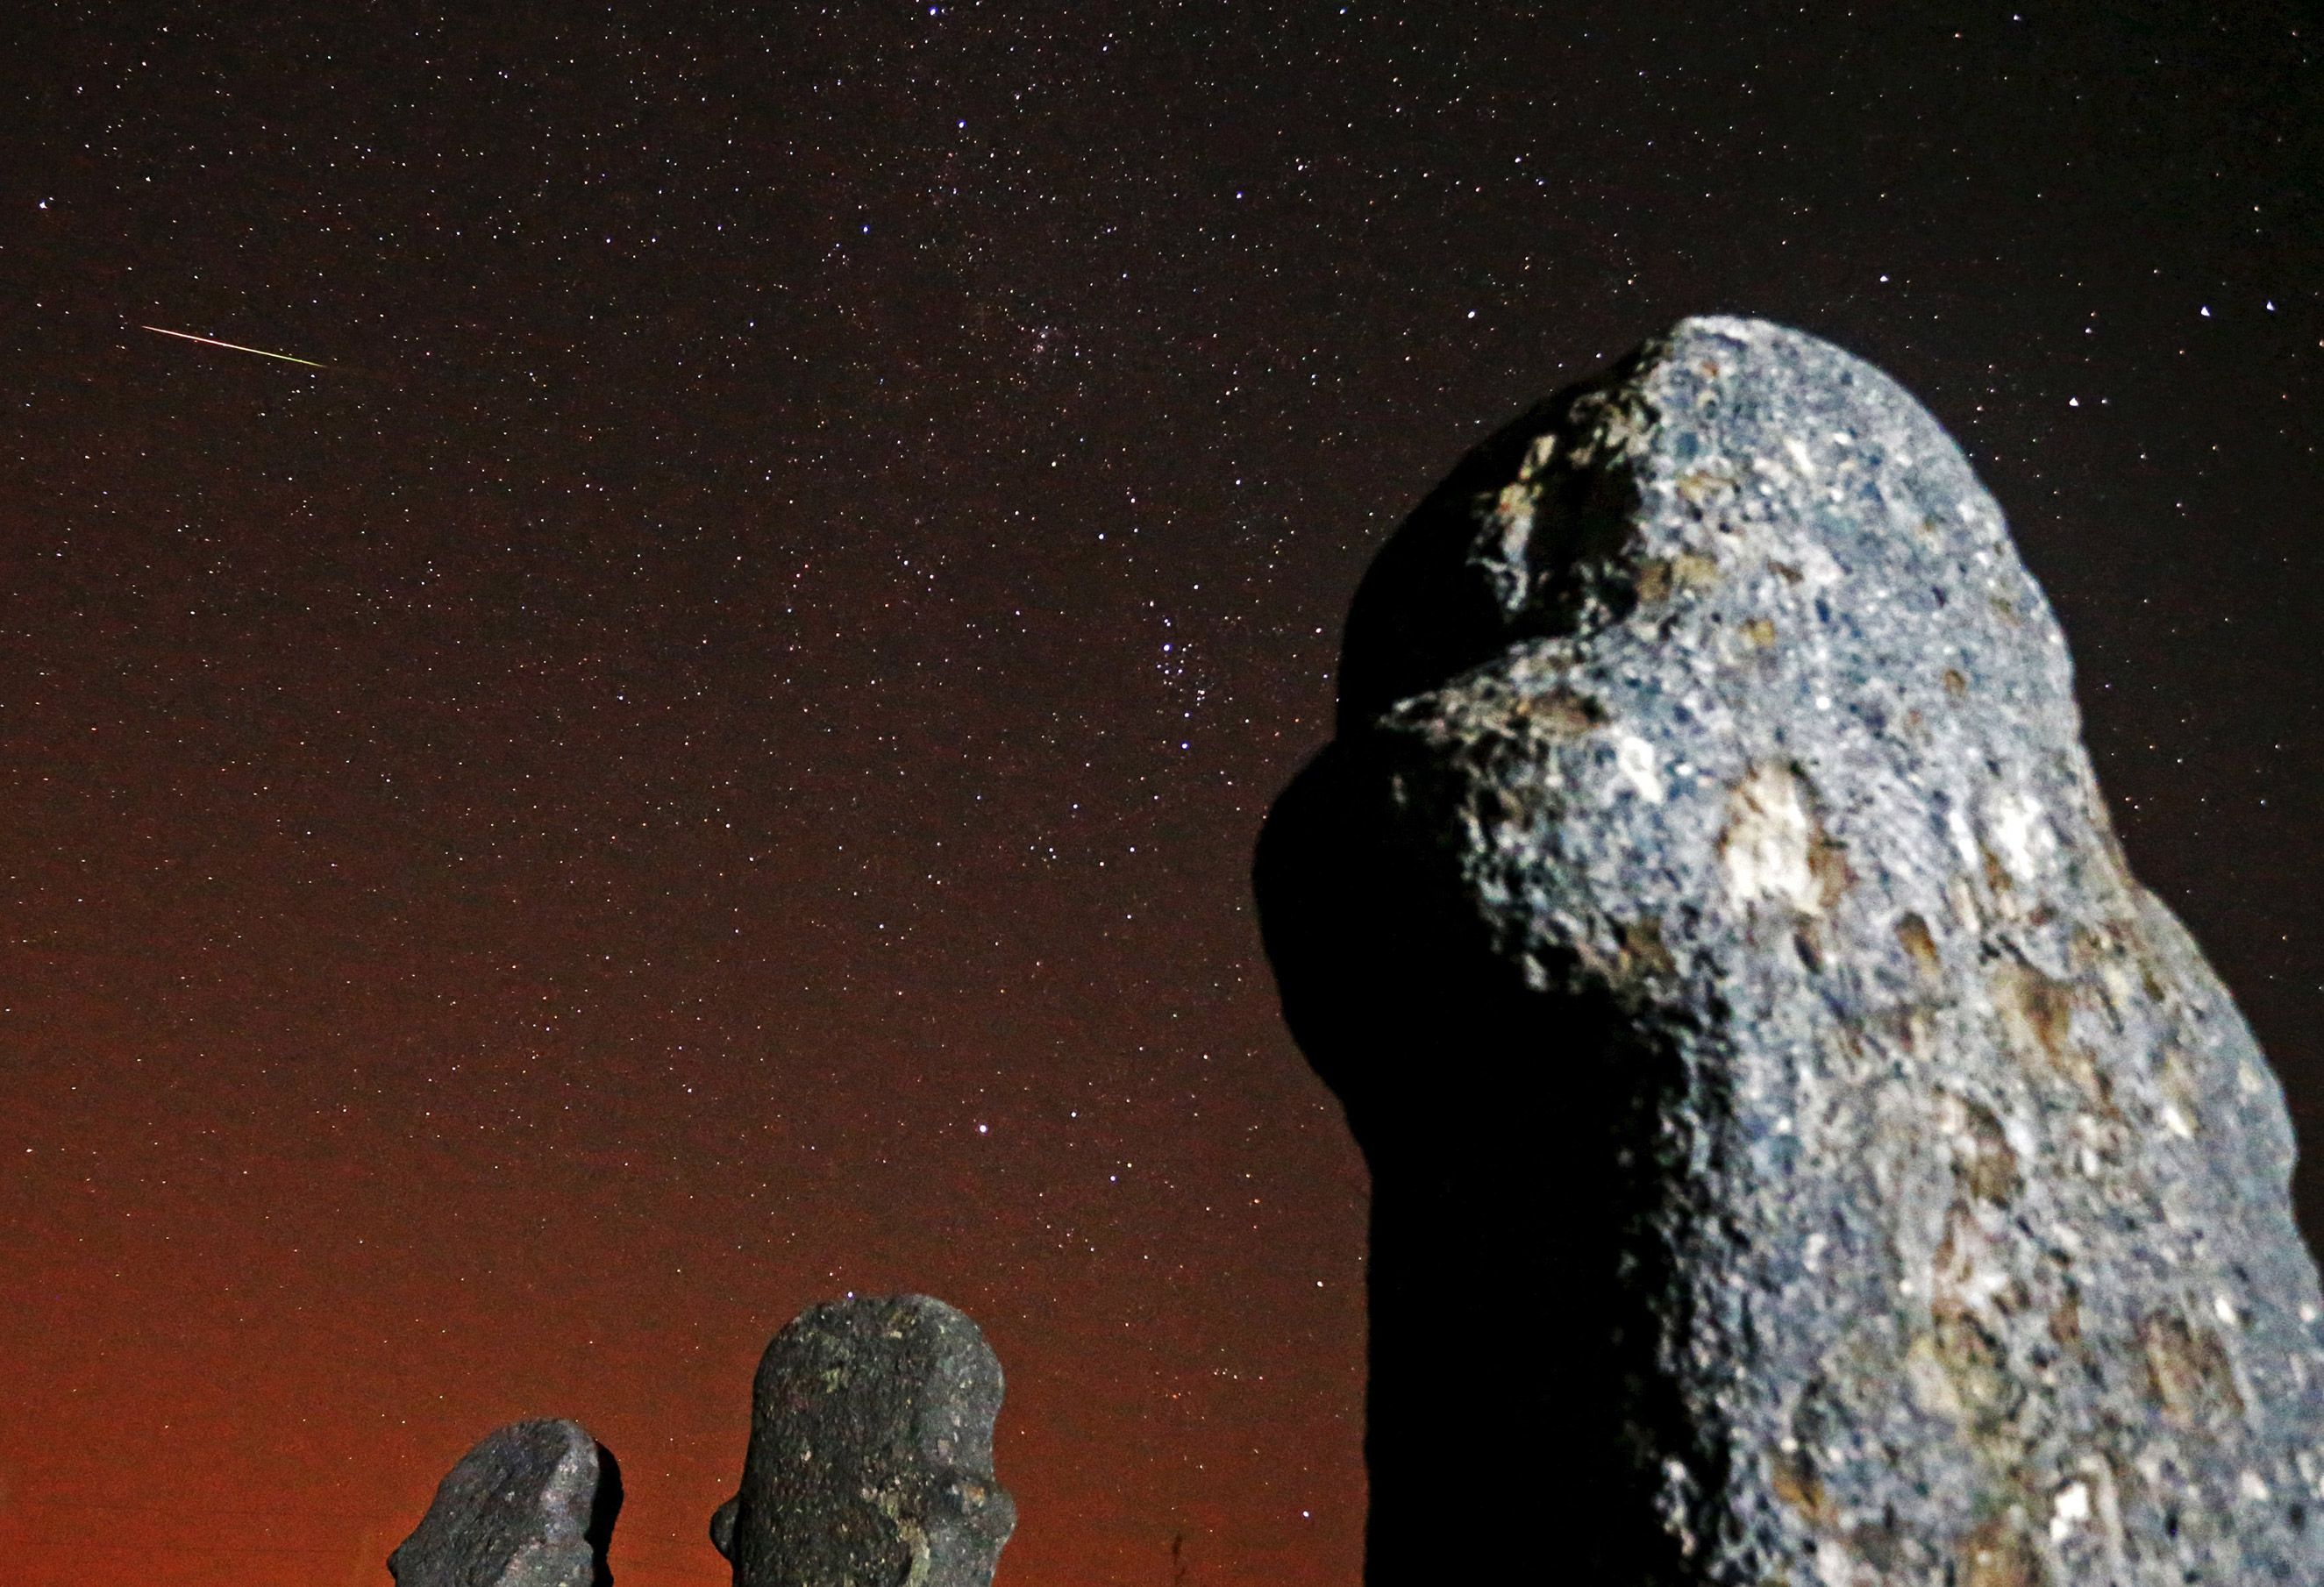 The Perseid meteor shower over the Maculje archaeological site near Novi Travnik in Bosnia on Aug.13, 2015.